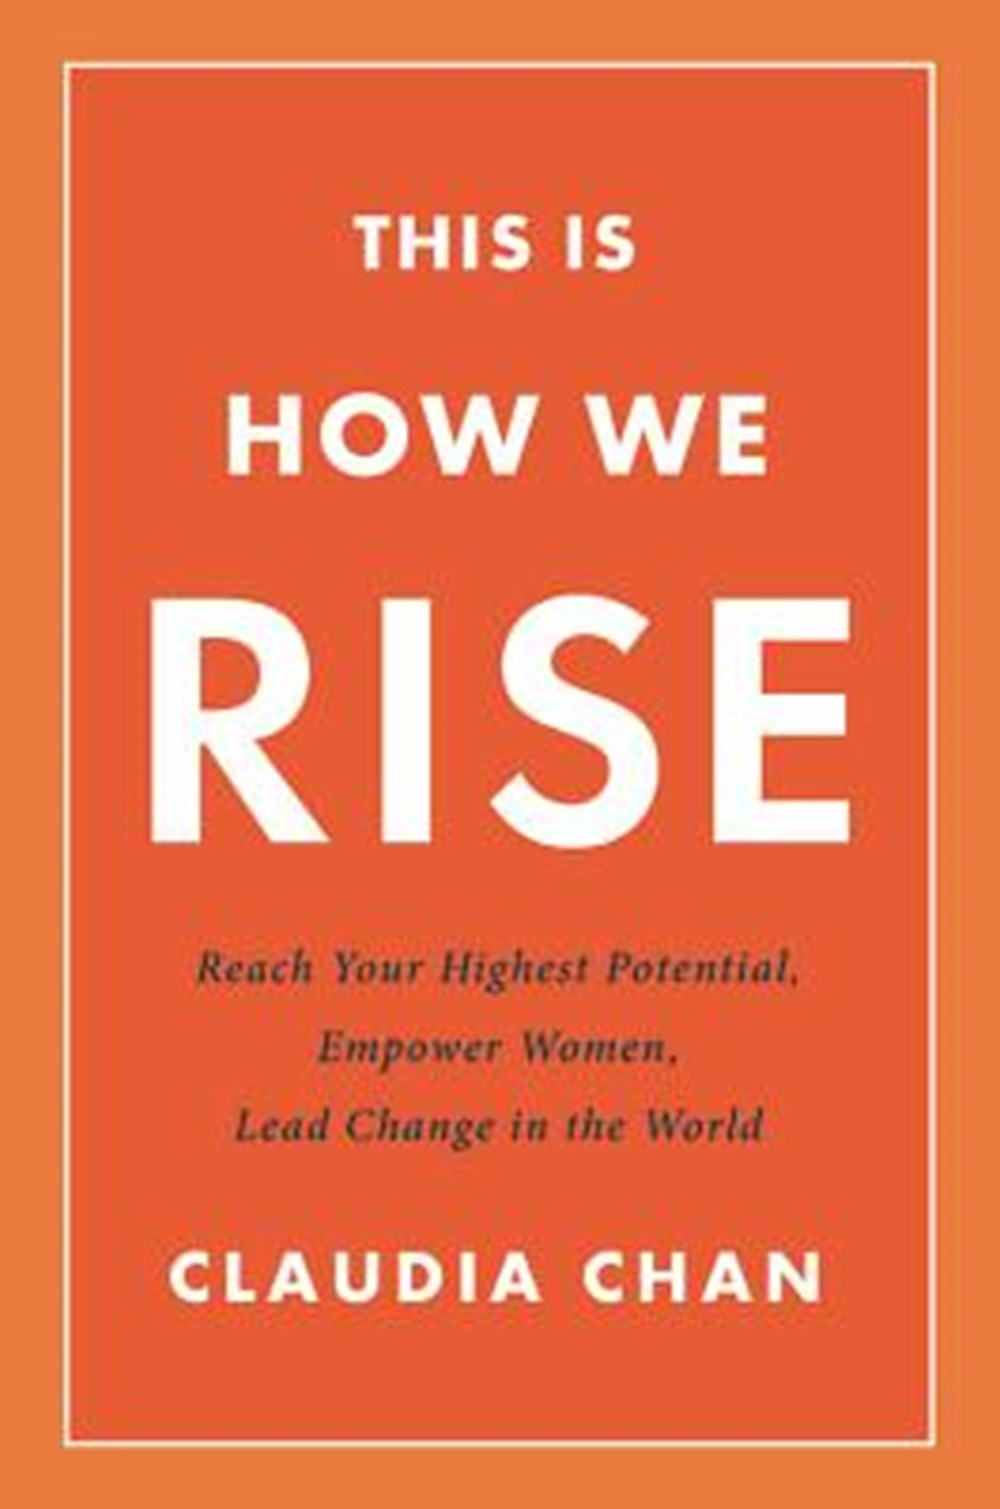 This Is How We Rise Reach Your Highest Potential, Empower Women, Lead Change in the World